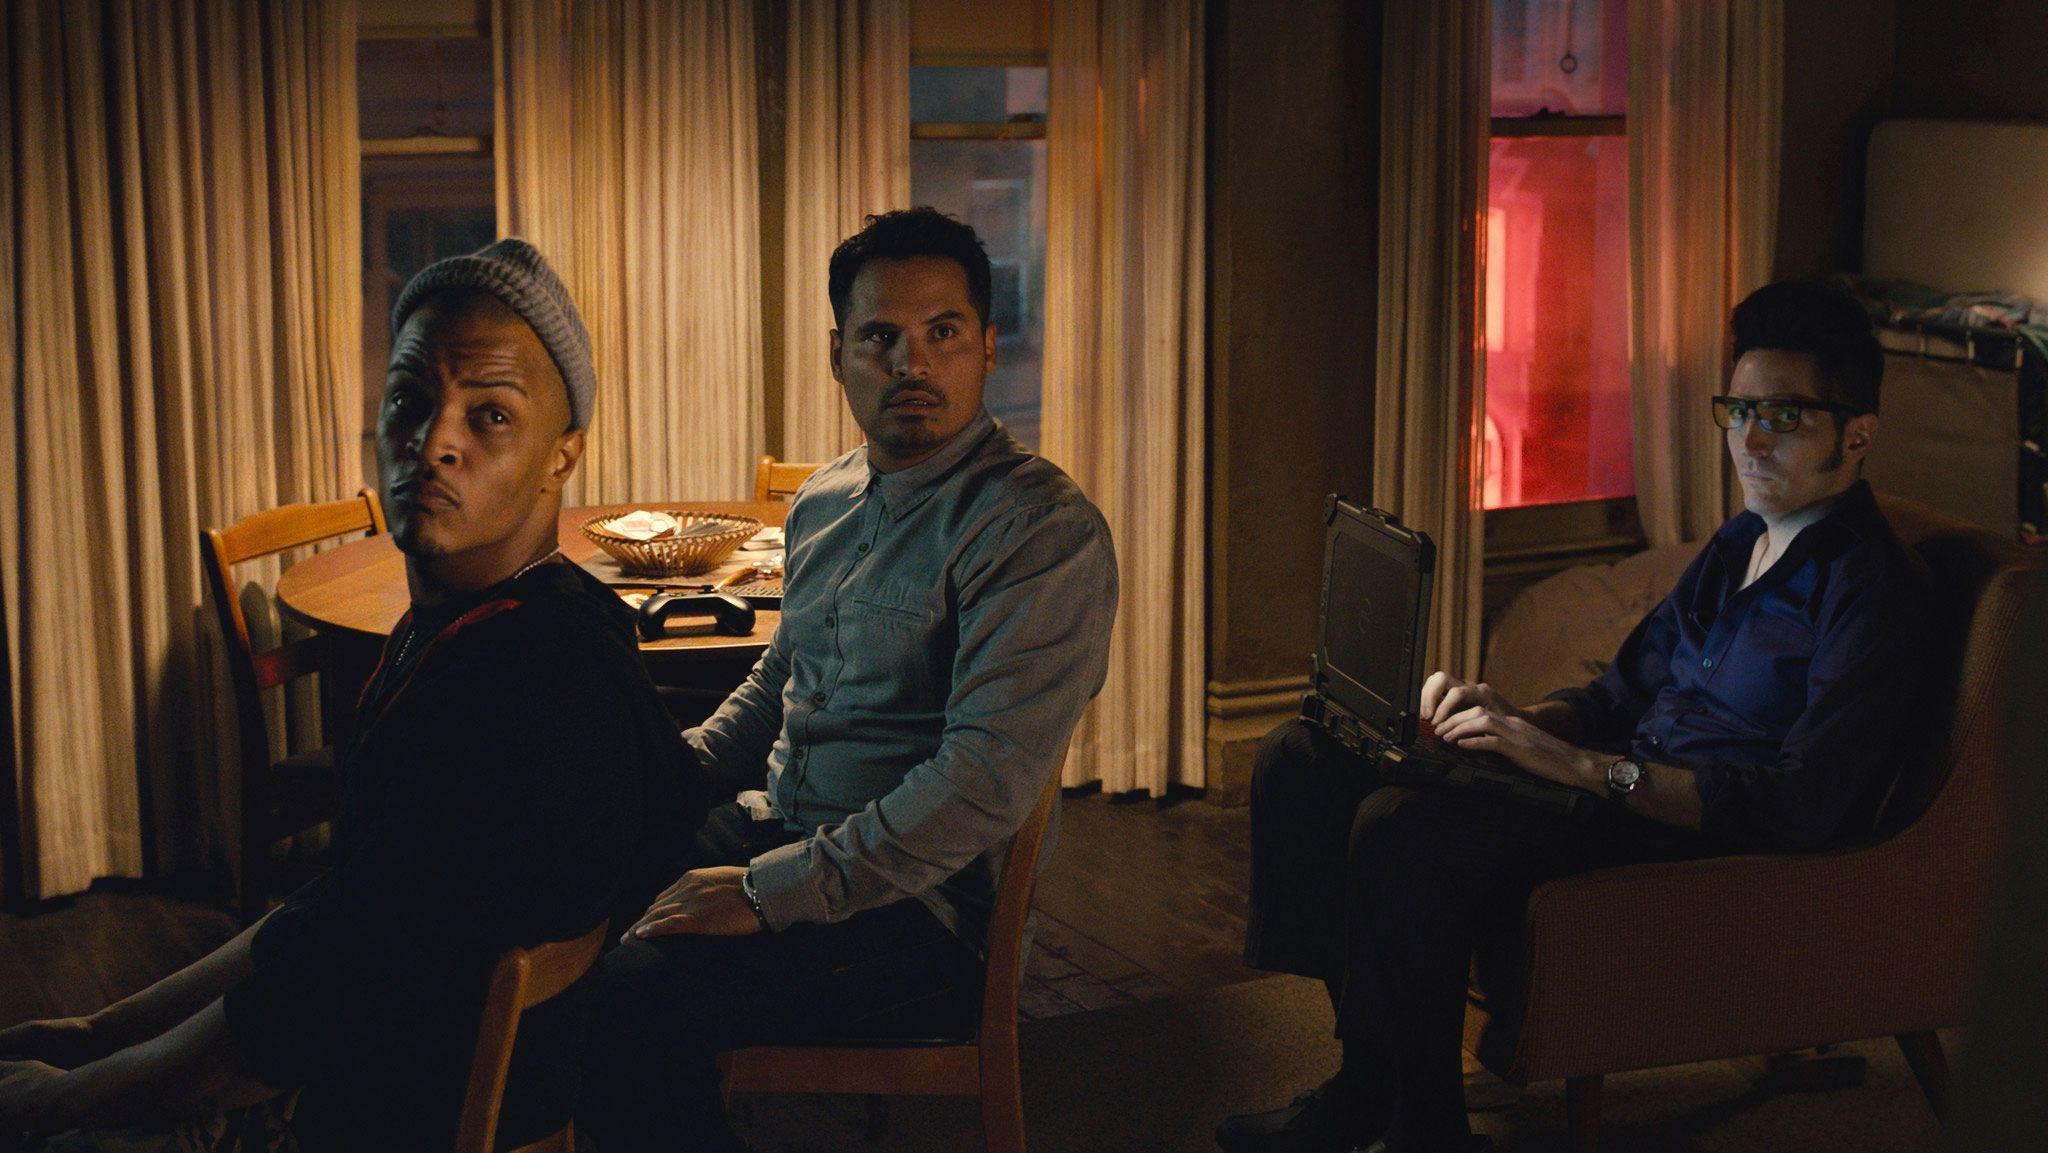 Ant-Man and the Wasp star Michael Peña reveals plans for third movie